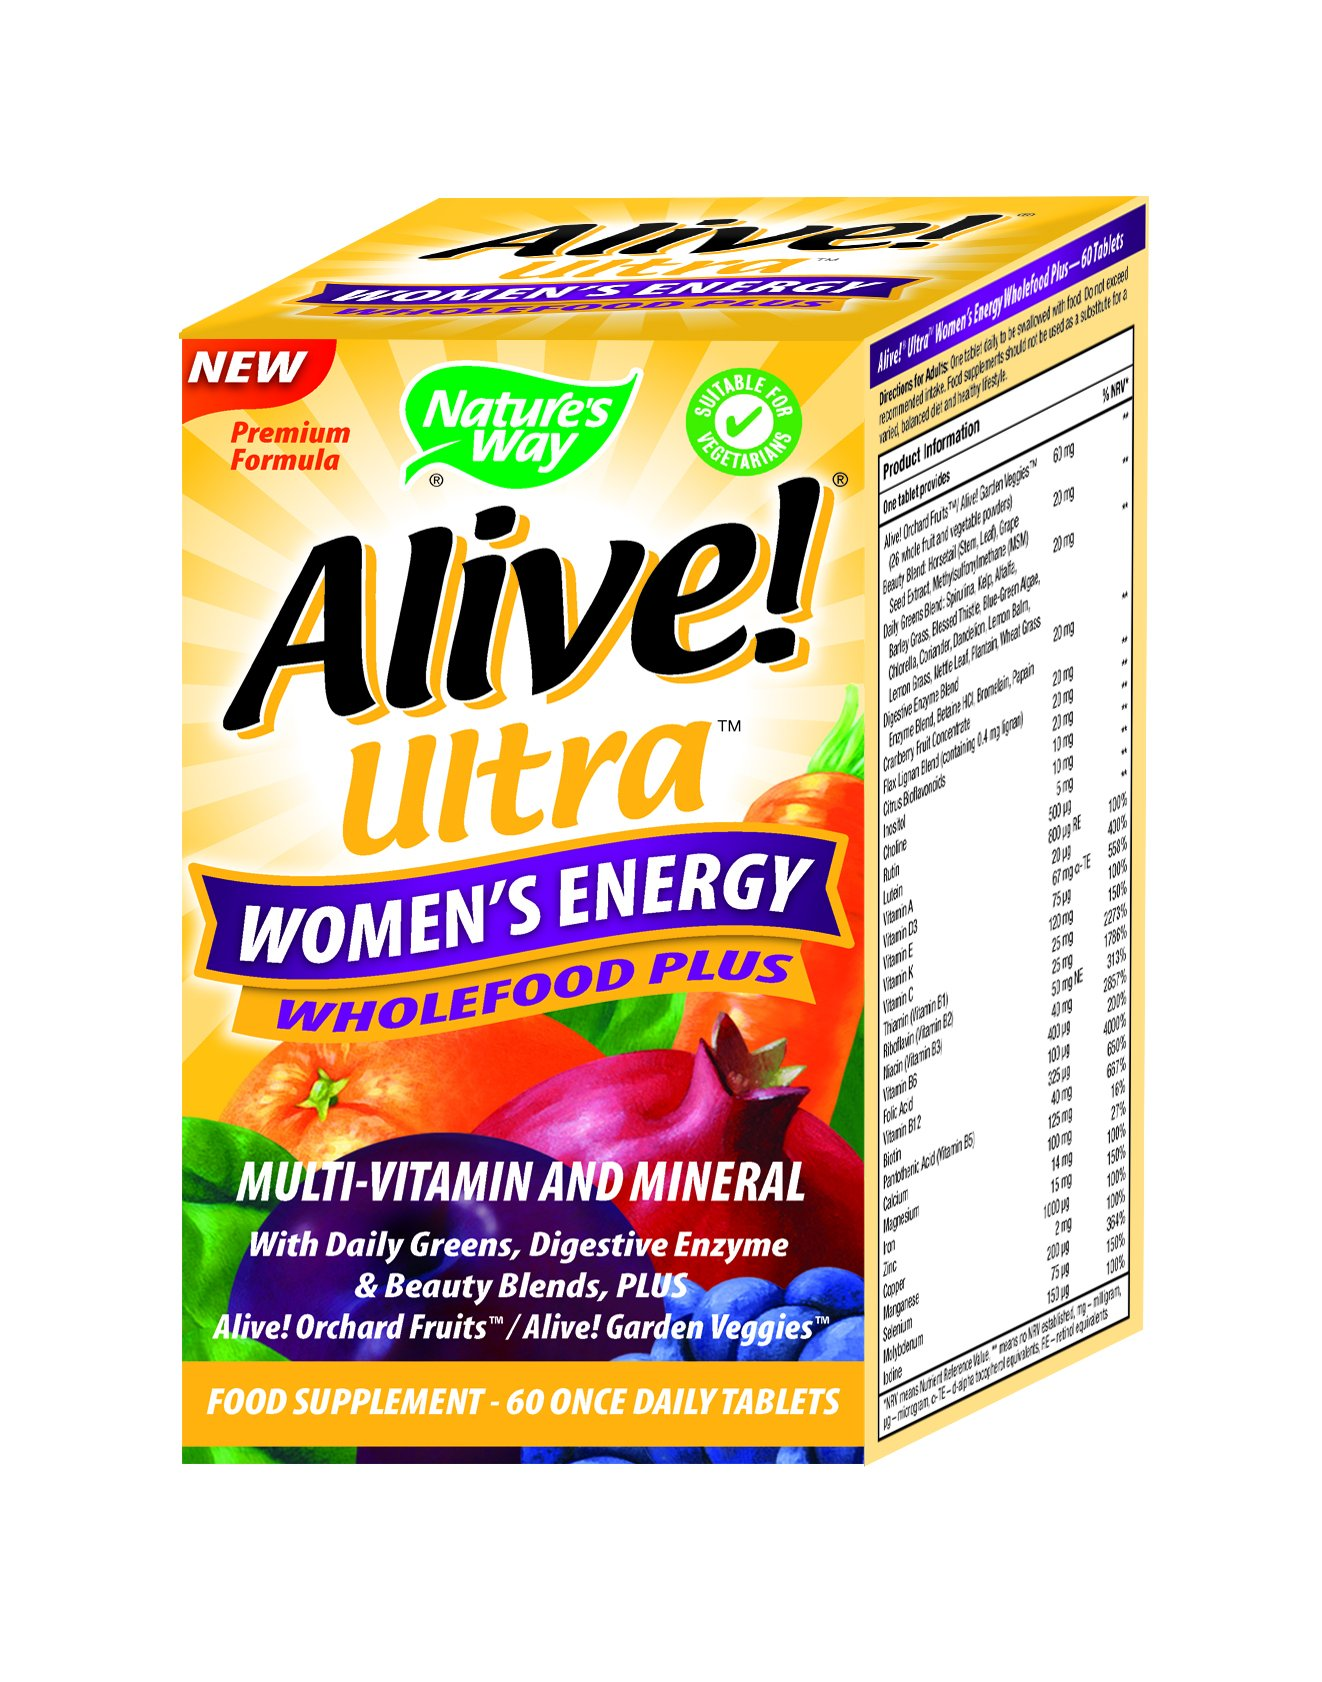 Alive Ultra Women S Energy Wholefood Plus Multivitamins 60 Tablets Buy Online In Jordan Alive Products In Jordan See Prices Reviews And Free Delivery Over Jd 60 00 Desertcart